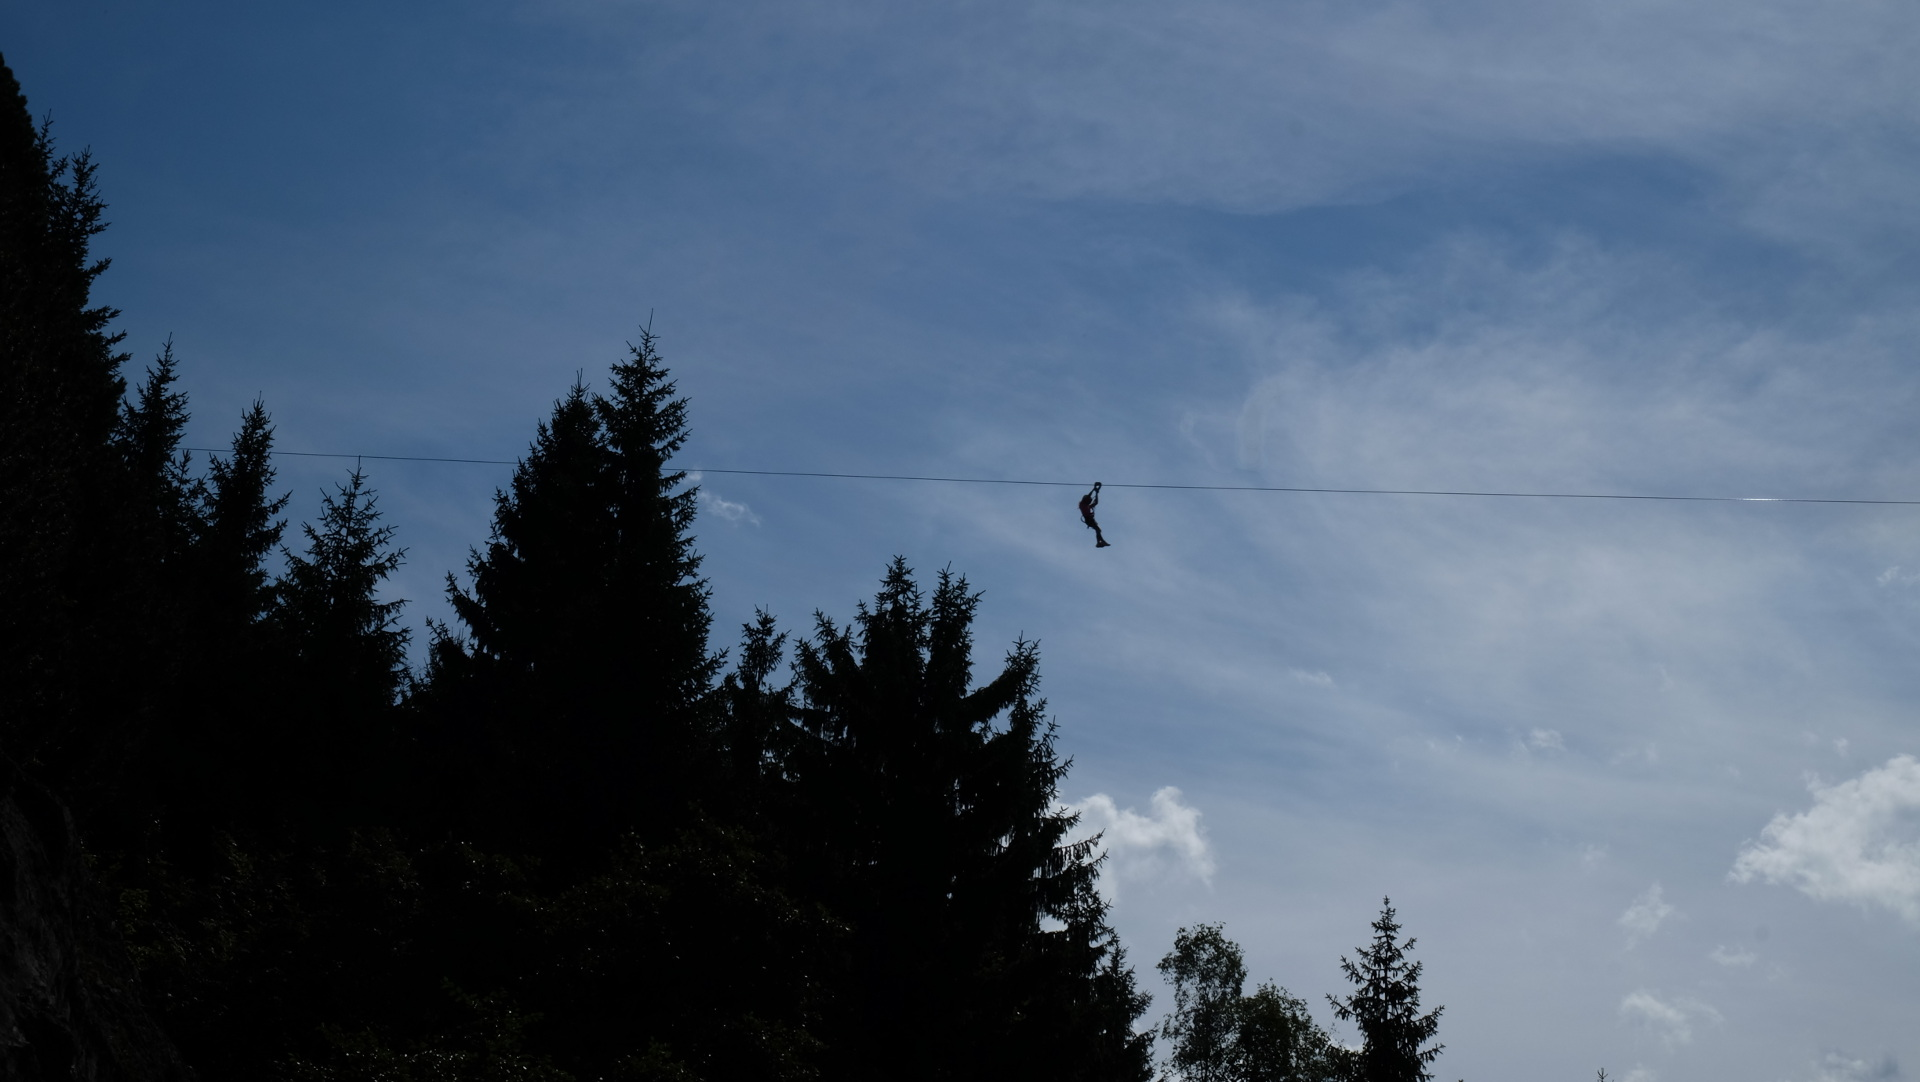 Der Flying-Fox hoch droben nach dem Start